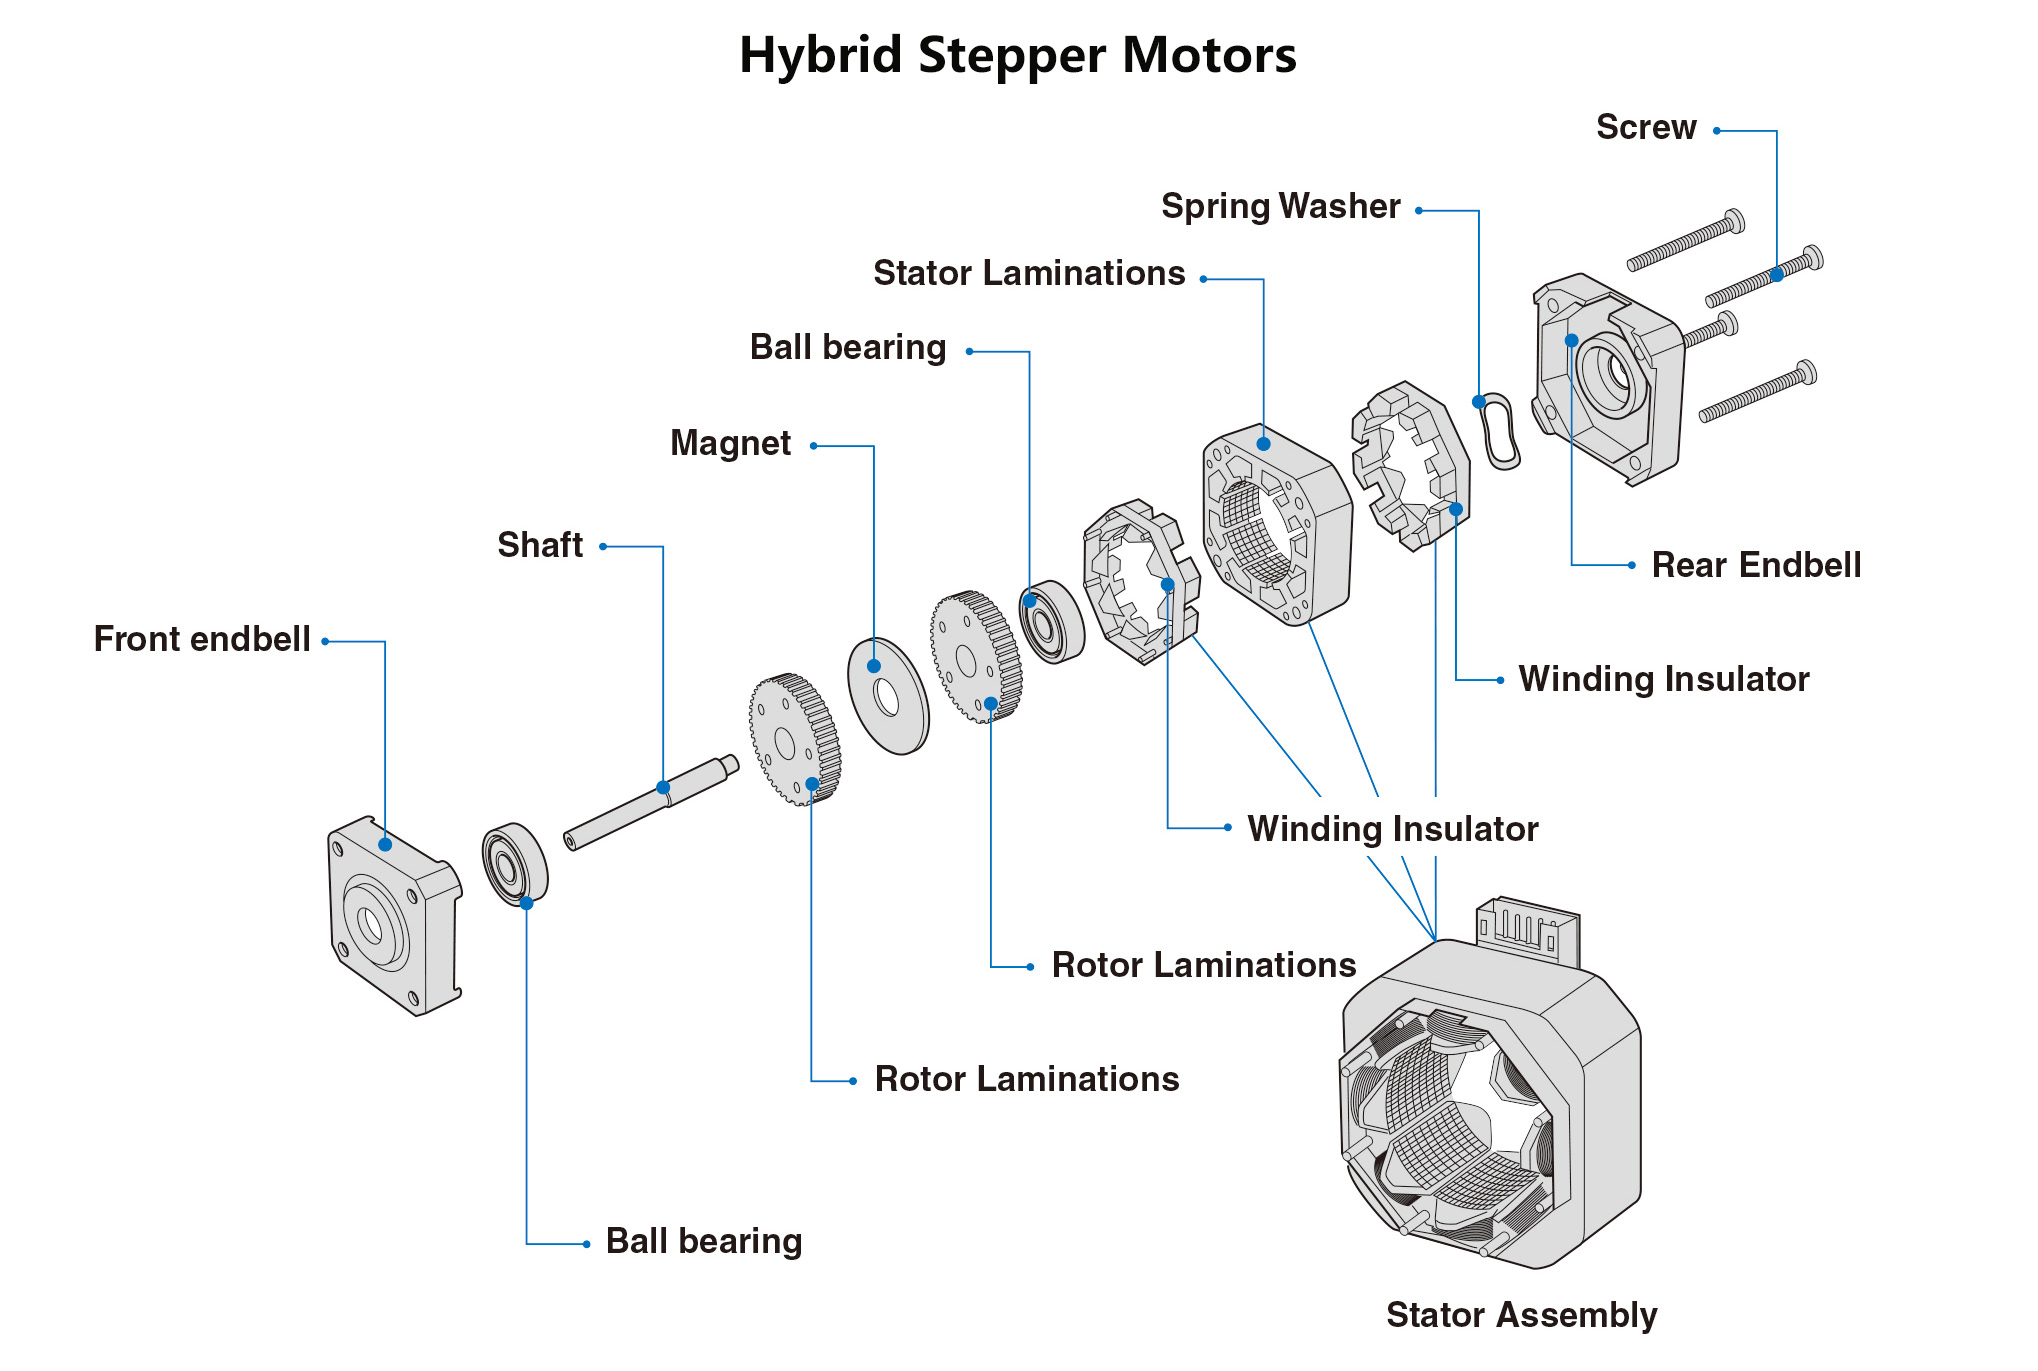 Hybrid Stepper Motors Structure